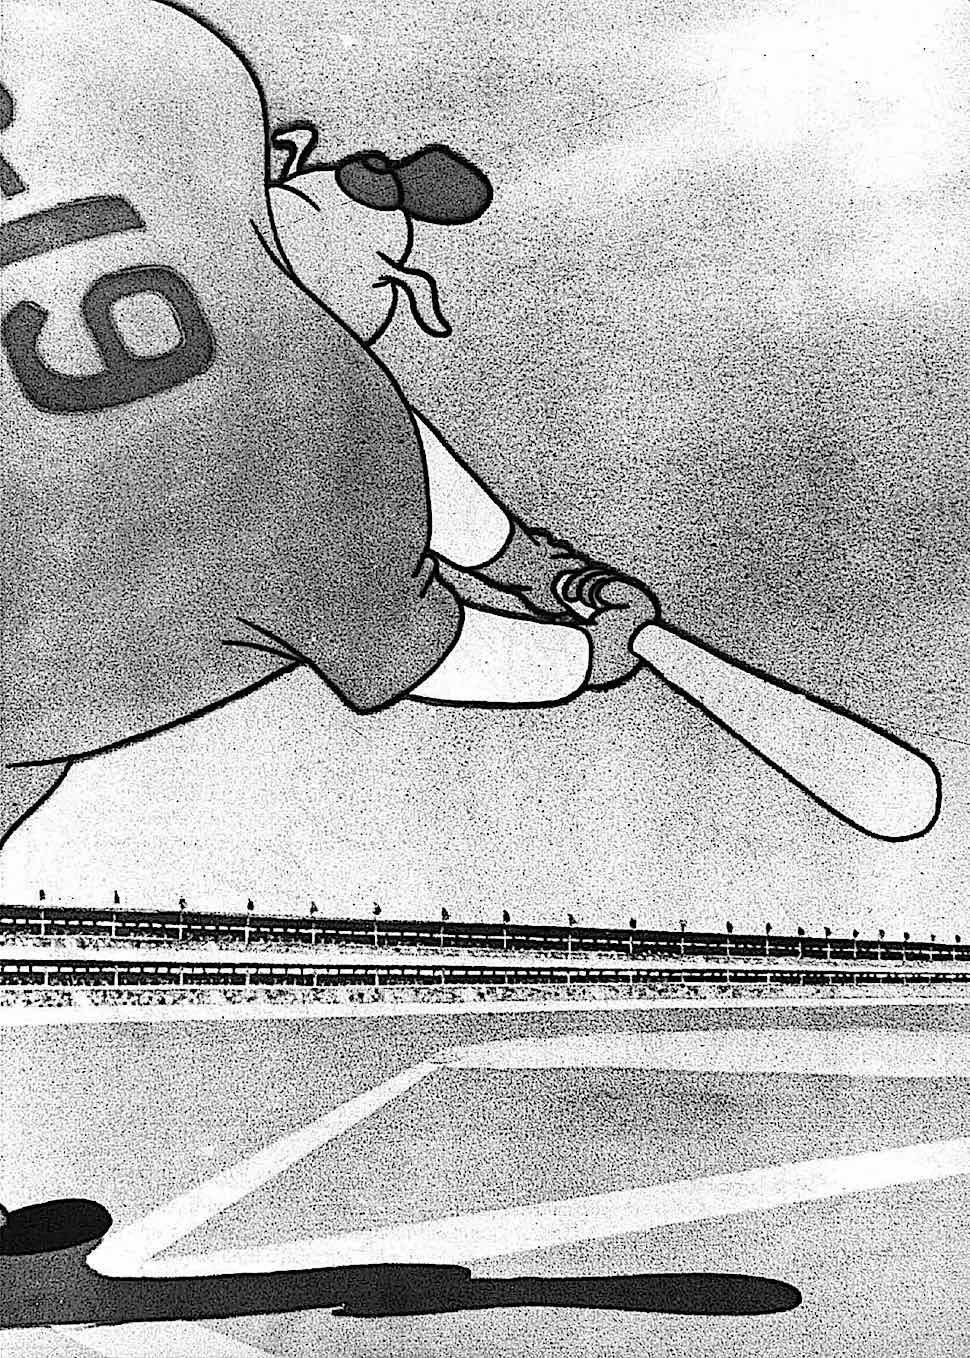 from a Tex Avery animation, a baseball player at bat